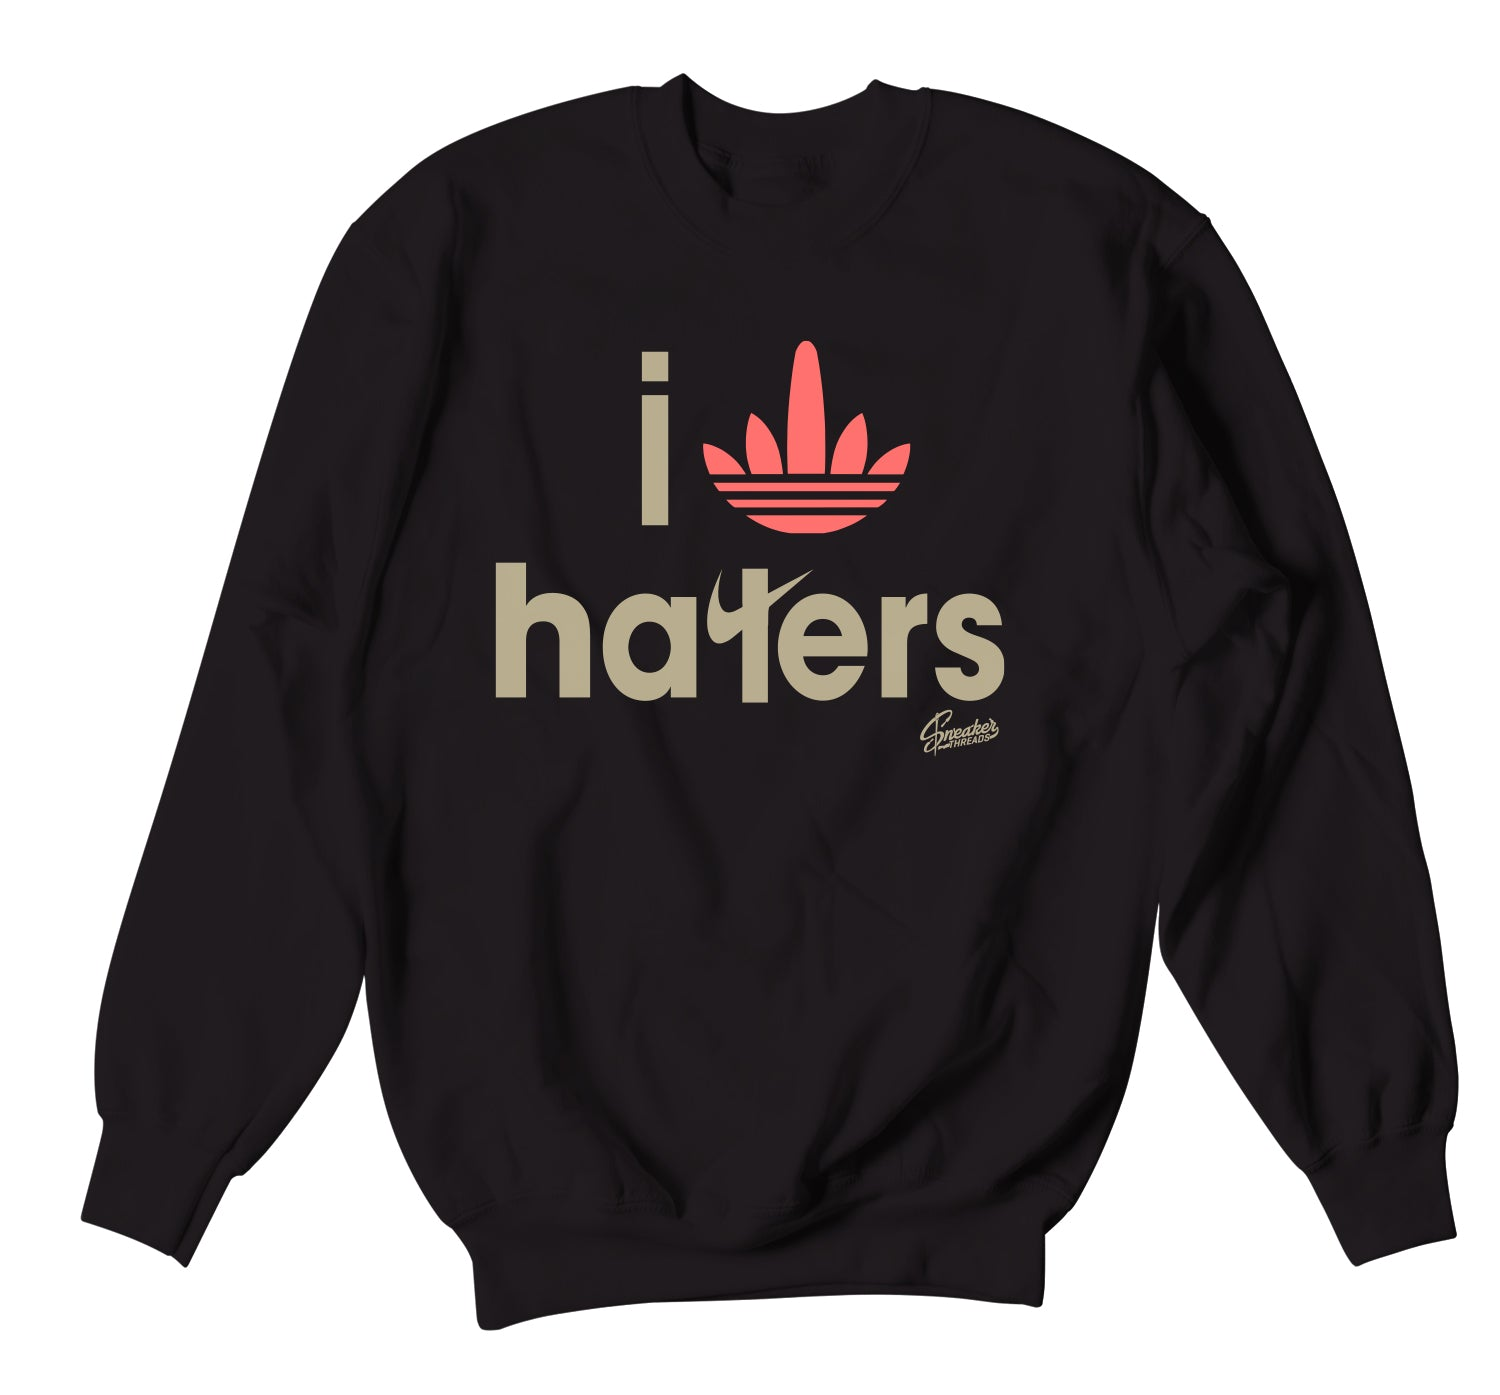 Yeezy Sand Taupe 350 Sweater - Haters - Black